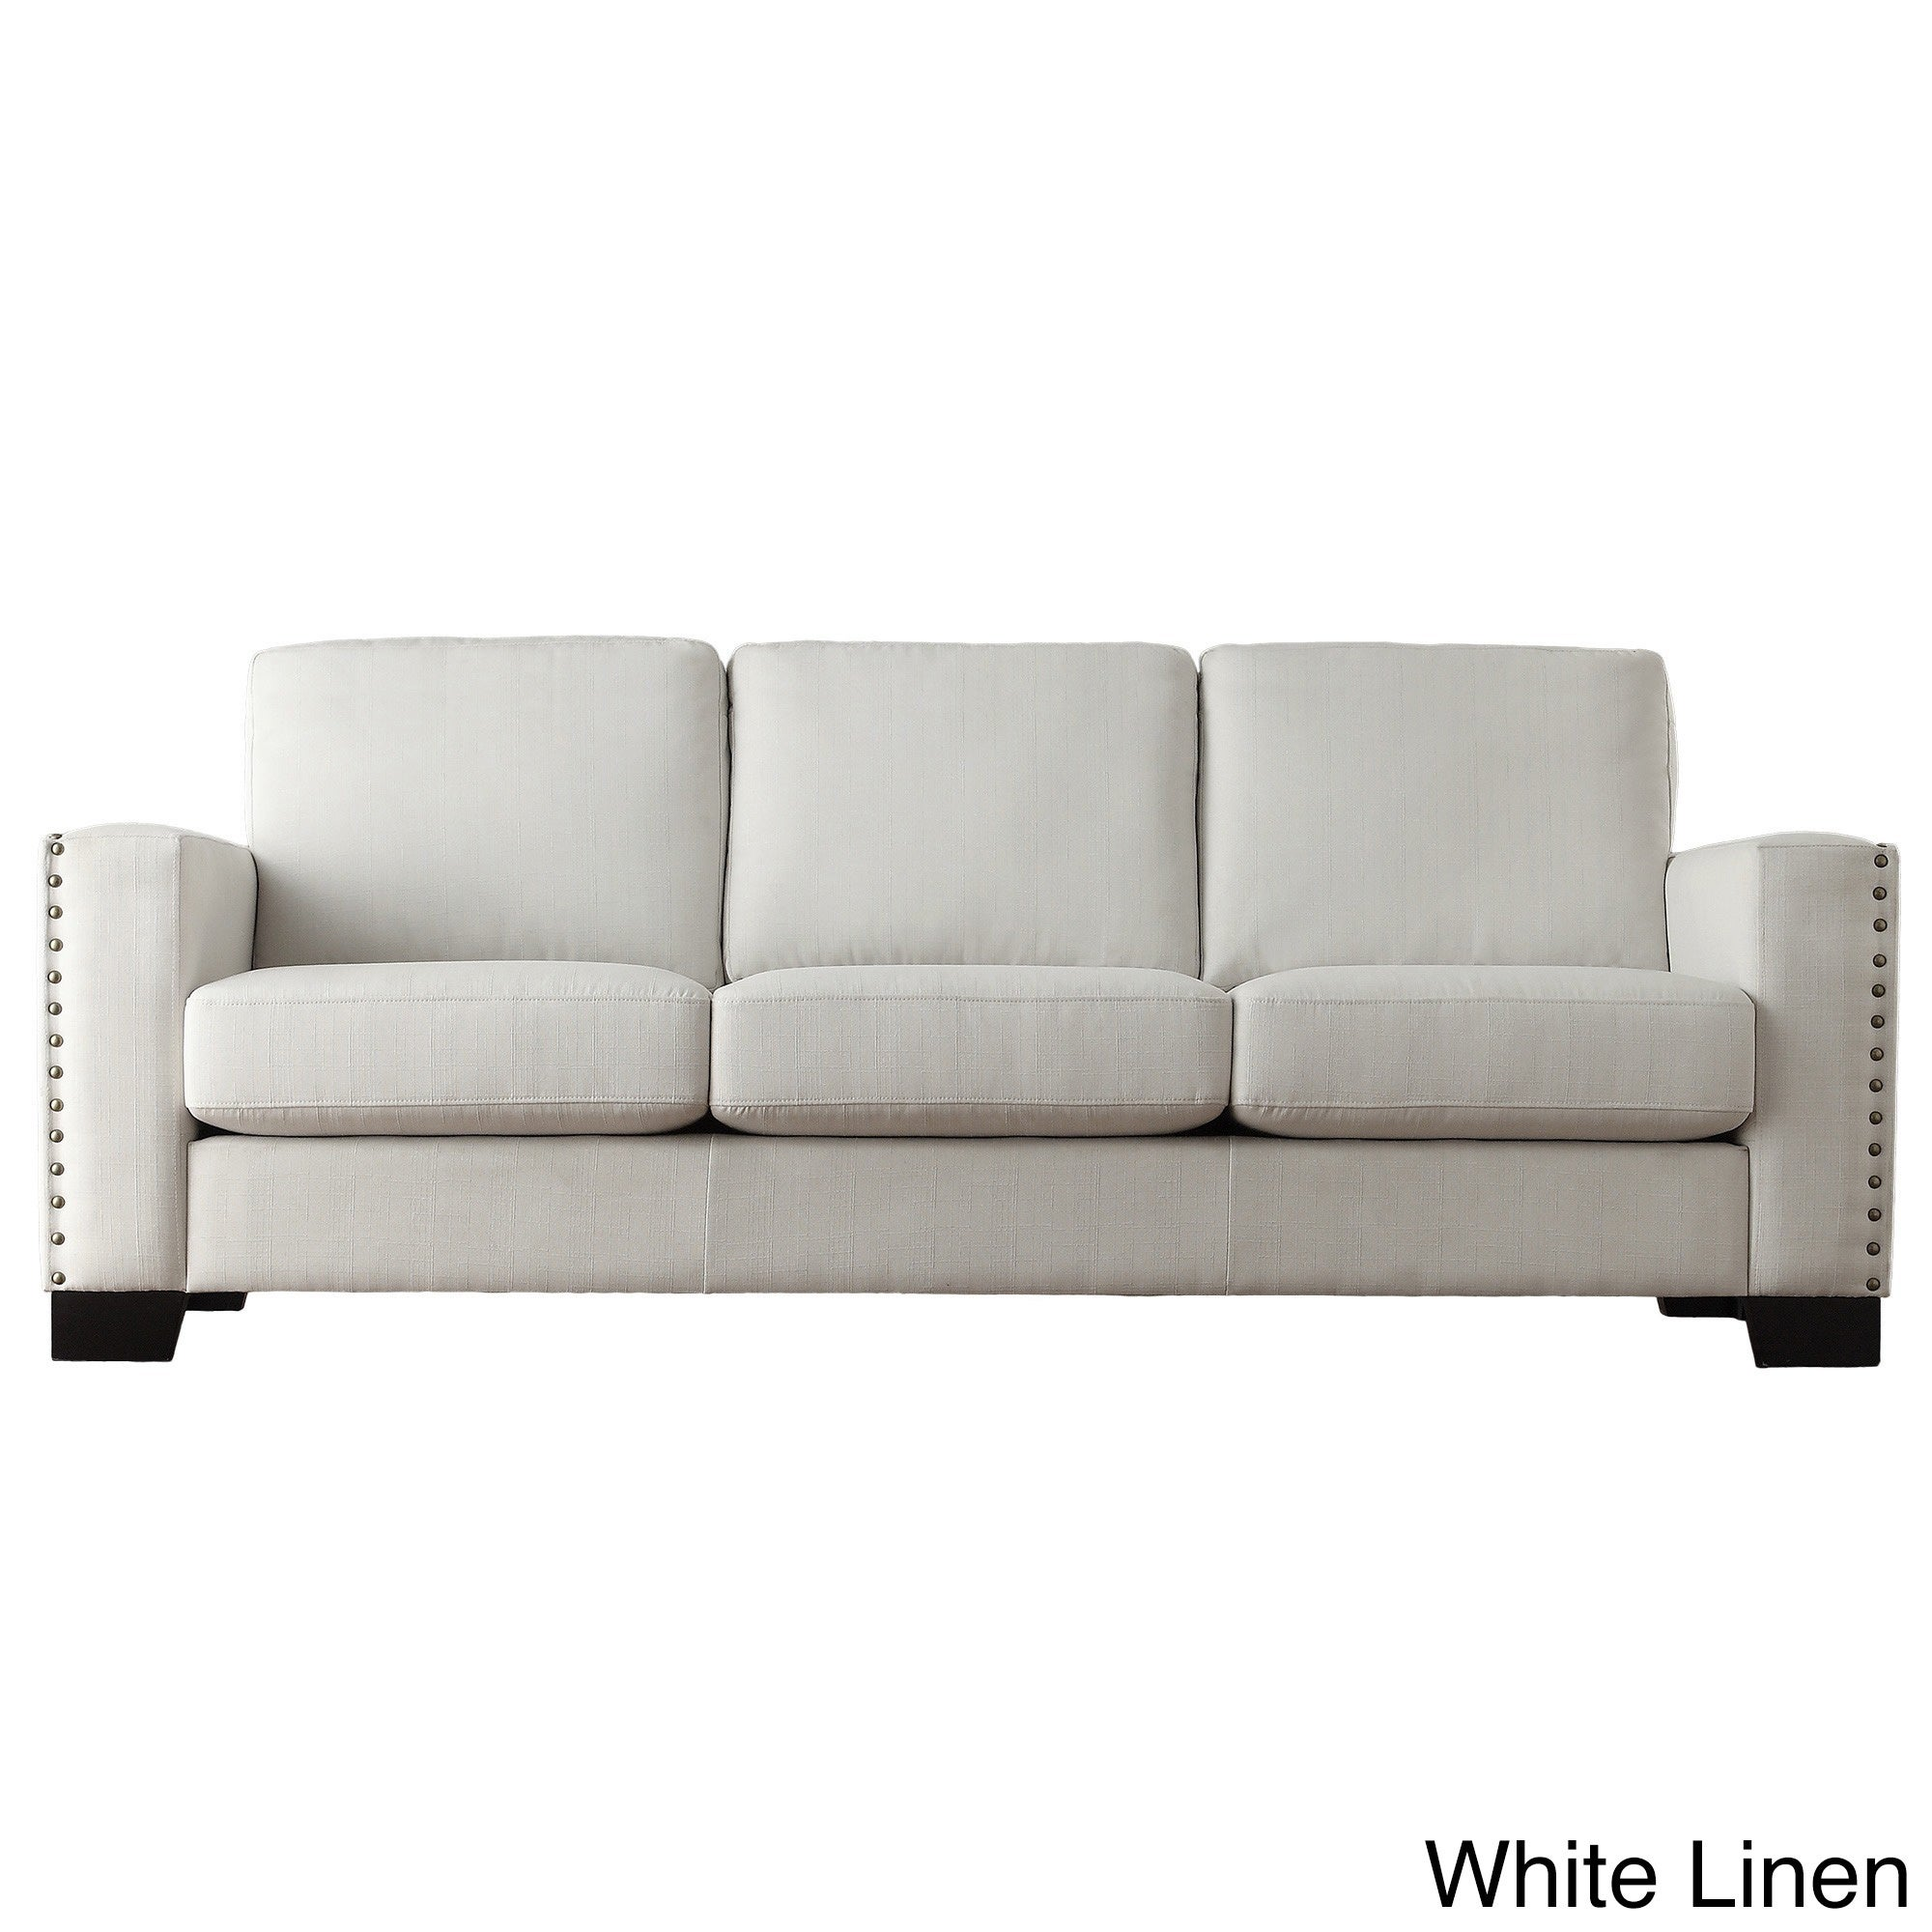 White Sofas & Couches For Less | Overstock